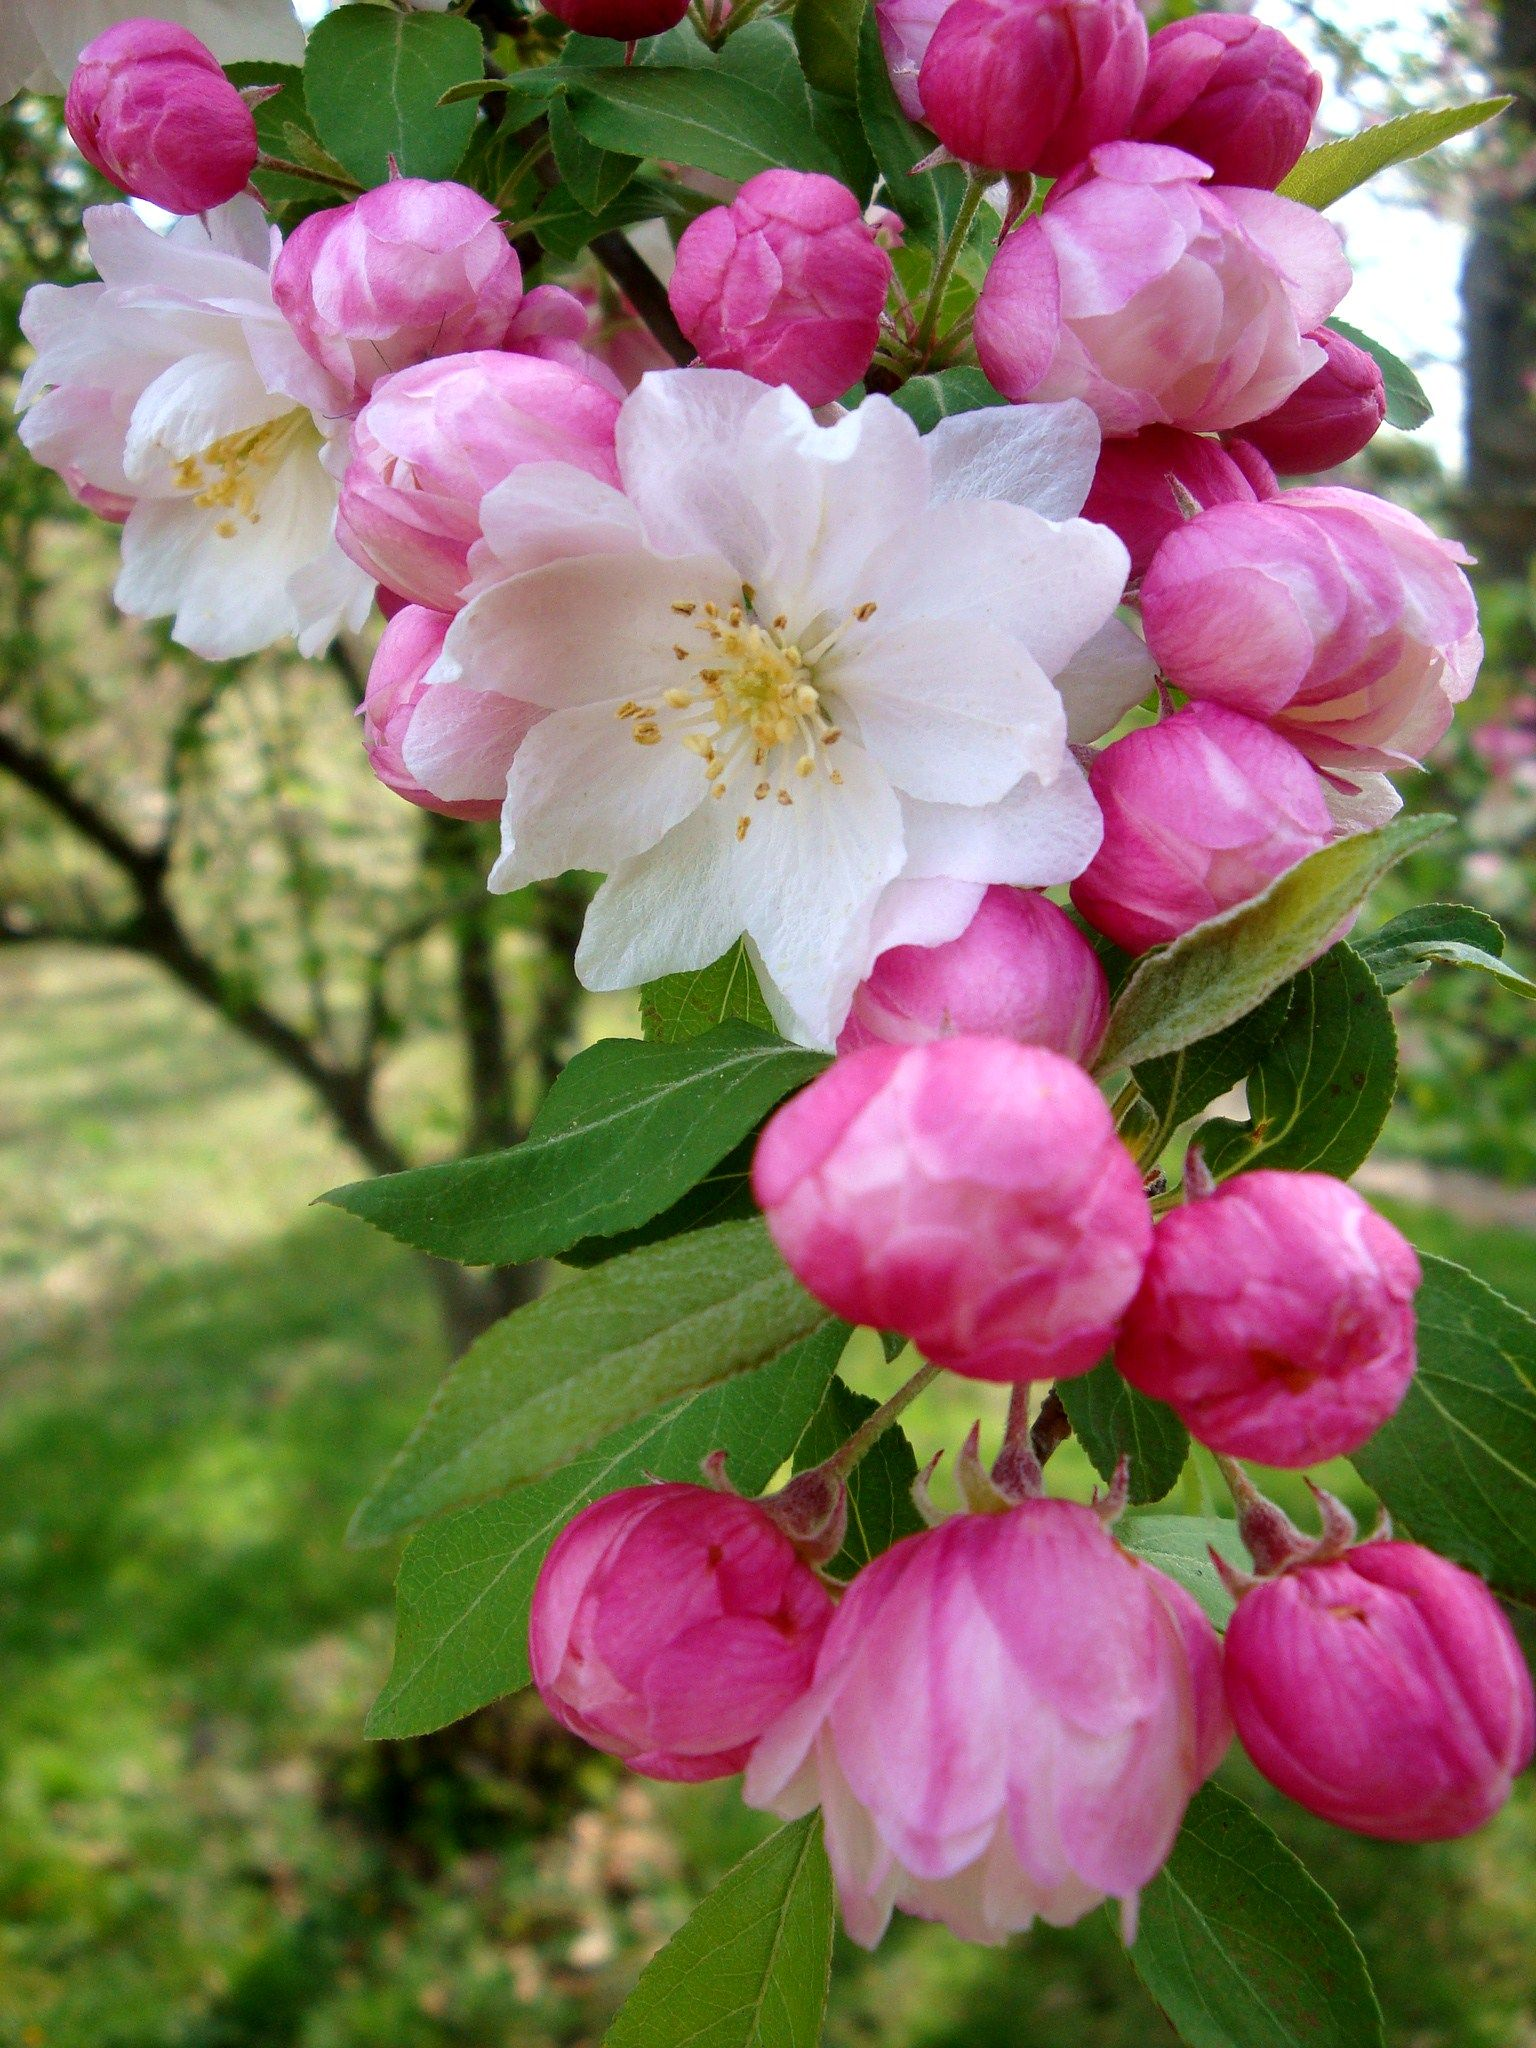 Apple blossoms, very sweet smell, good for vertical height ...